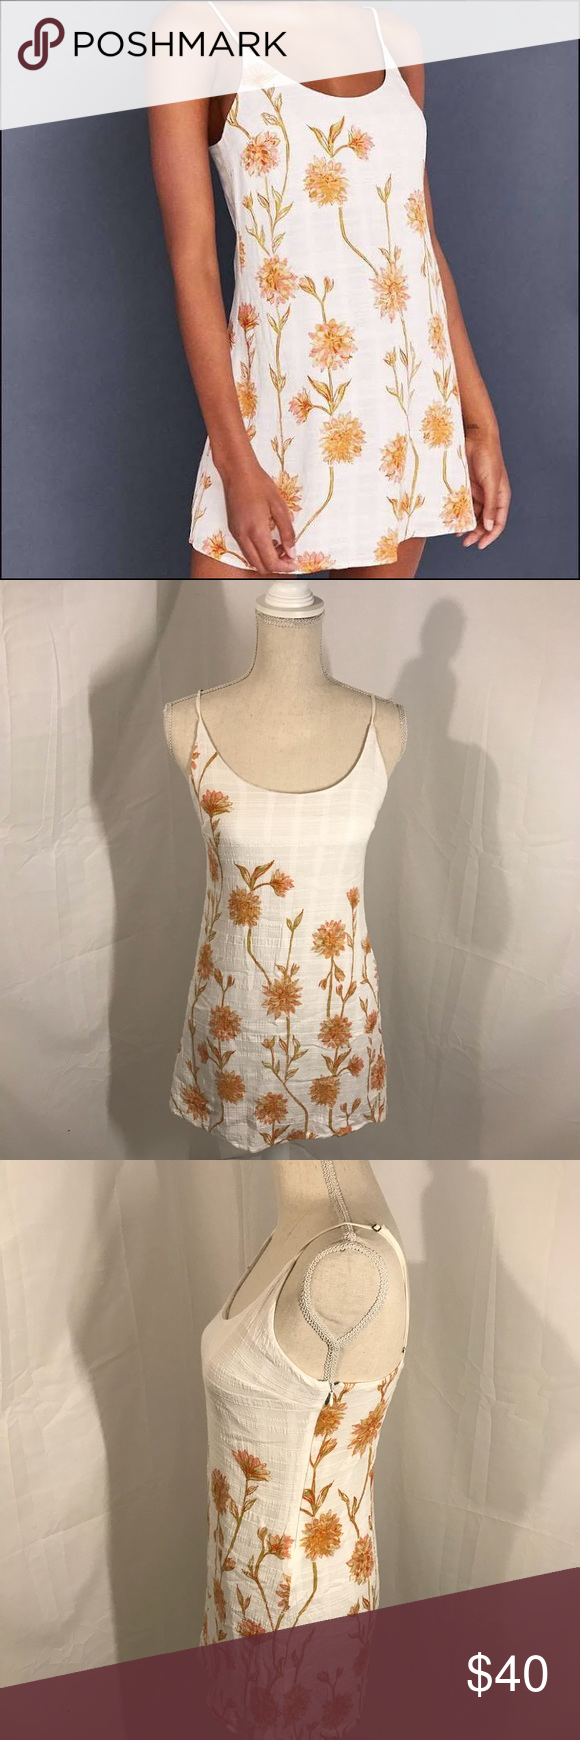 6f836808a2fc7 Kimchi Blue Cambridge Floral Dobby Slip Dress IMPORTANT: runs very small,  fits more like an XS/S I typically wear a size xs or small and this dress  fits me ...